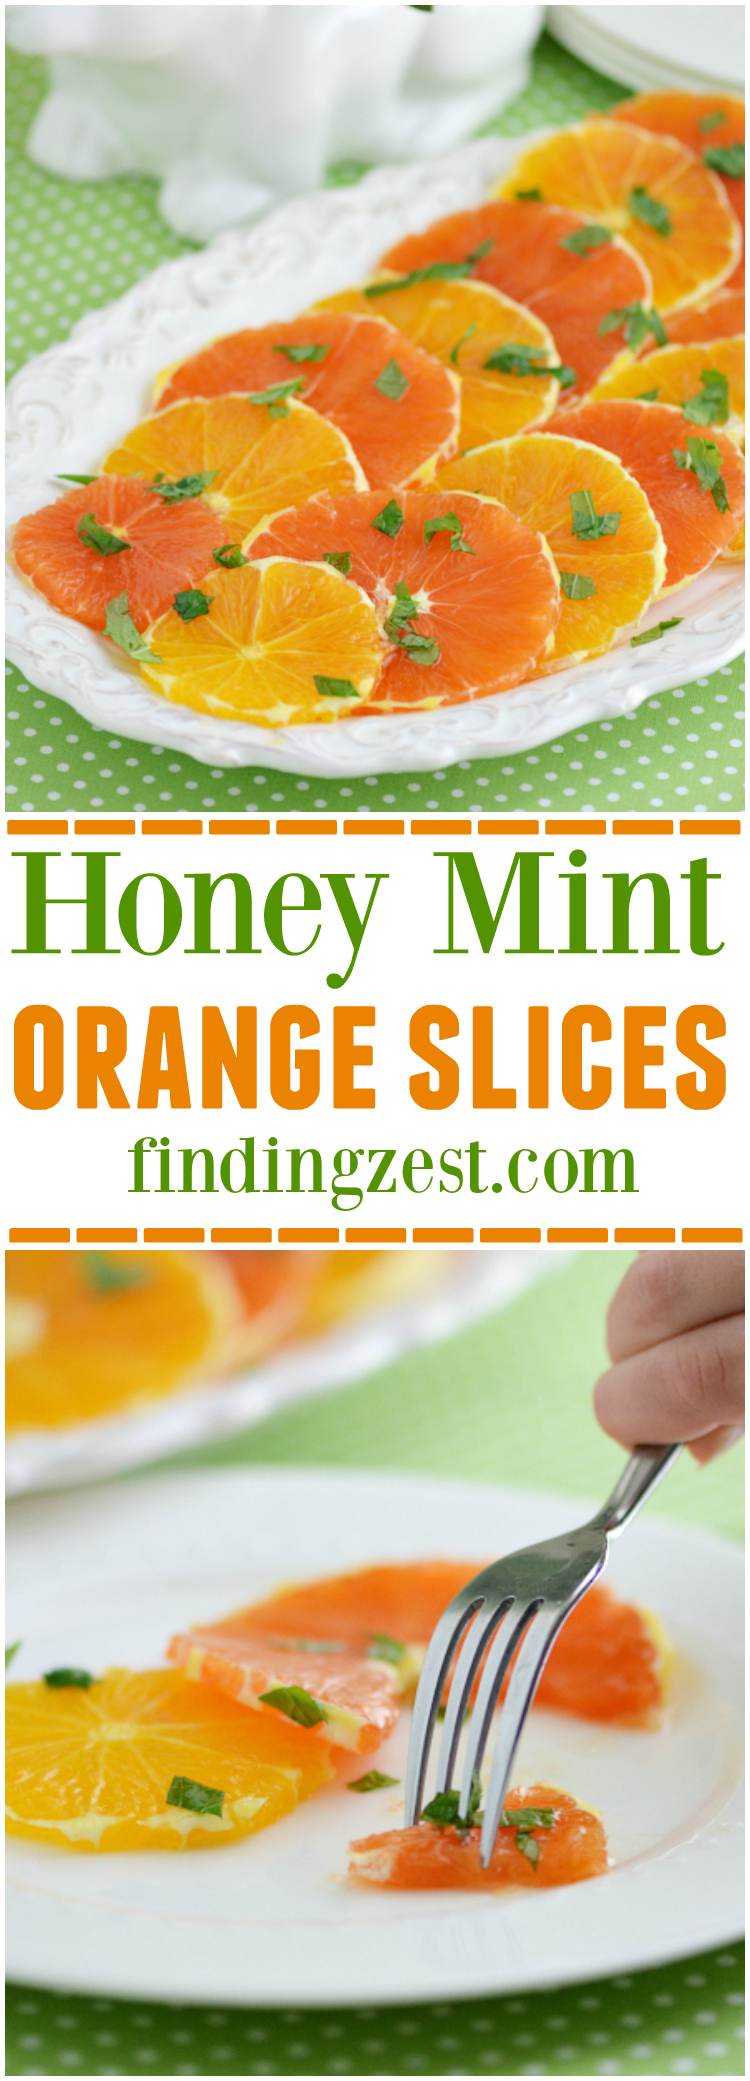 Enjoy the refreshing flavors of traditional navel and Cara Cara navel orange slices topped with fresh mint and honey! Try this fruit salad for breakfast or dessert. Would be great for Easter, Mother's Day or Christmas brunch.